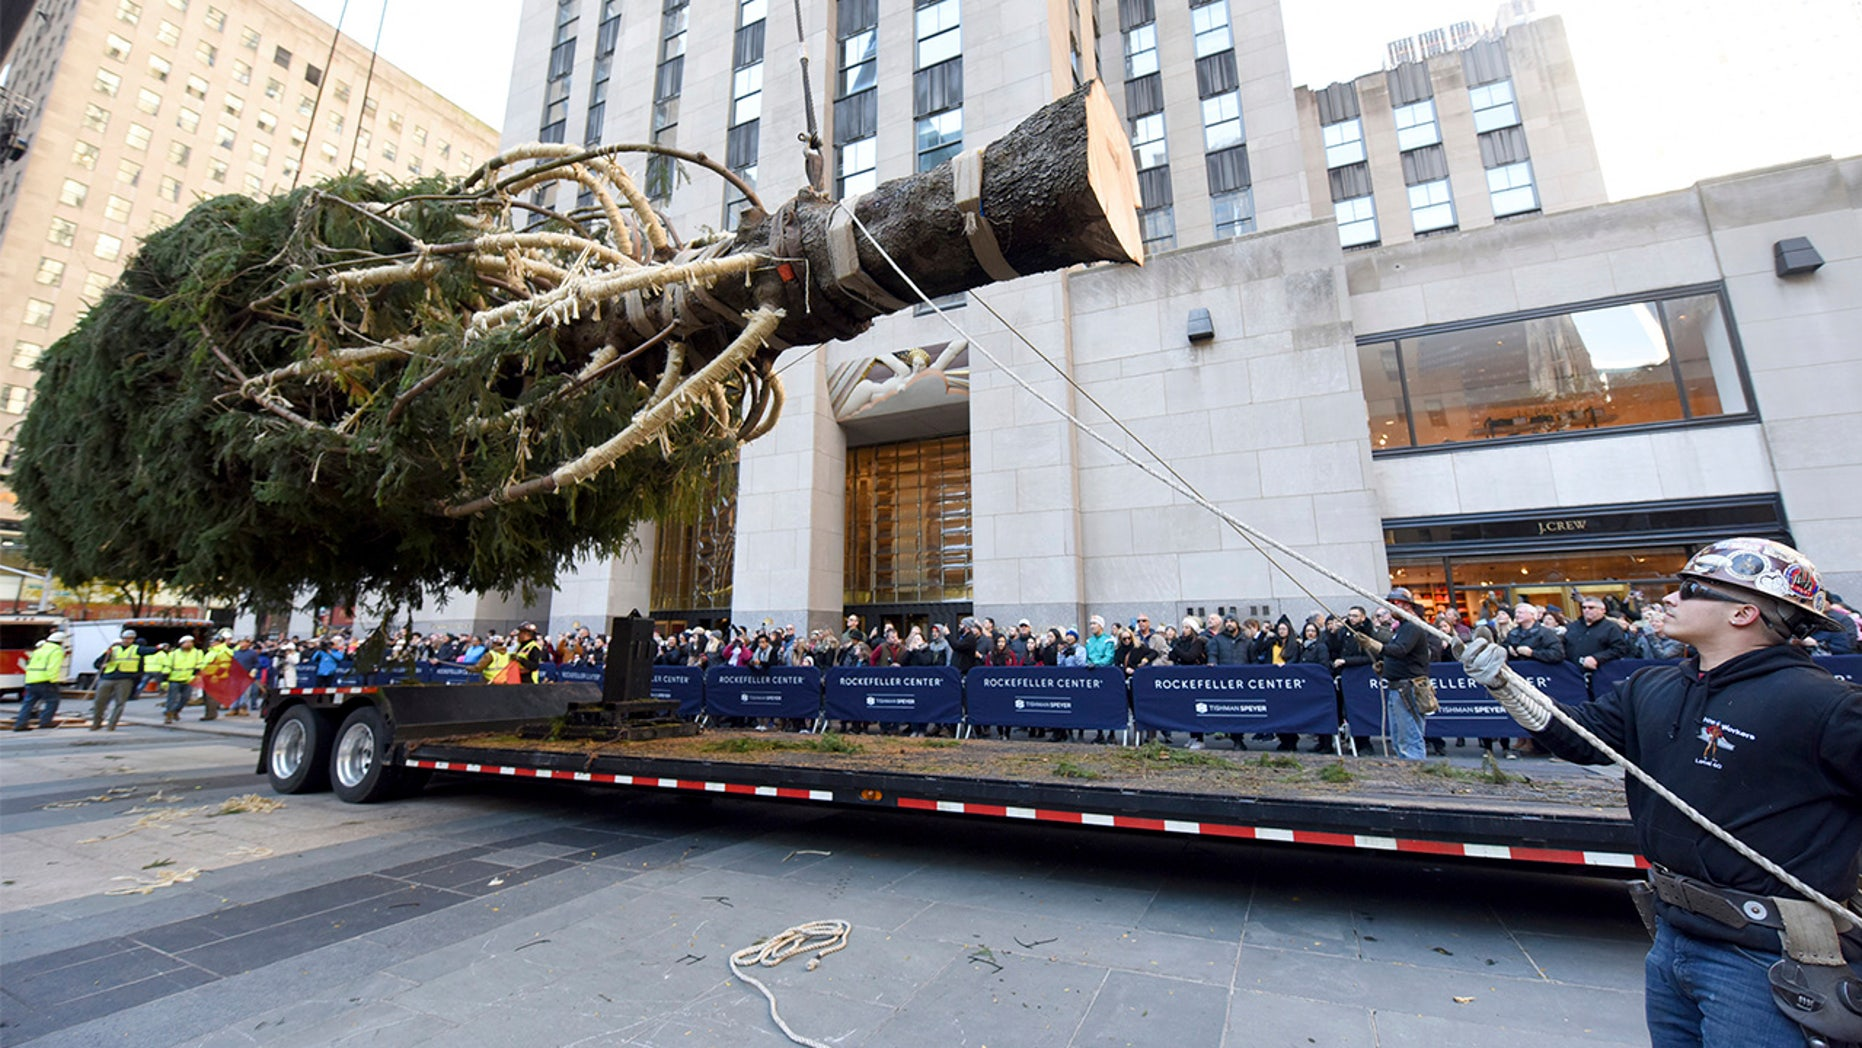 Workers prepare to raise the 2018 Rockefeller Center Christmas tree, a 72-foot tall, 12-ton Norway Spruce from Wallkill, New York, on Saturday. The 86thRockefeller Center Christmas Tree Lighting ceremony will take place on Wednesday, Nov. 28. (Diane Bondareff/AP Images for Tishman Speyer)